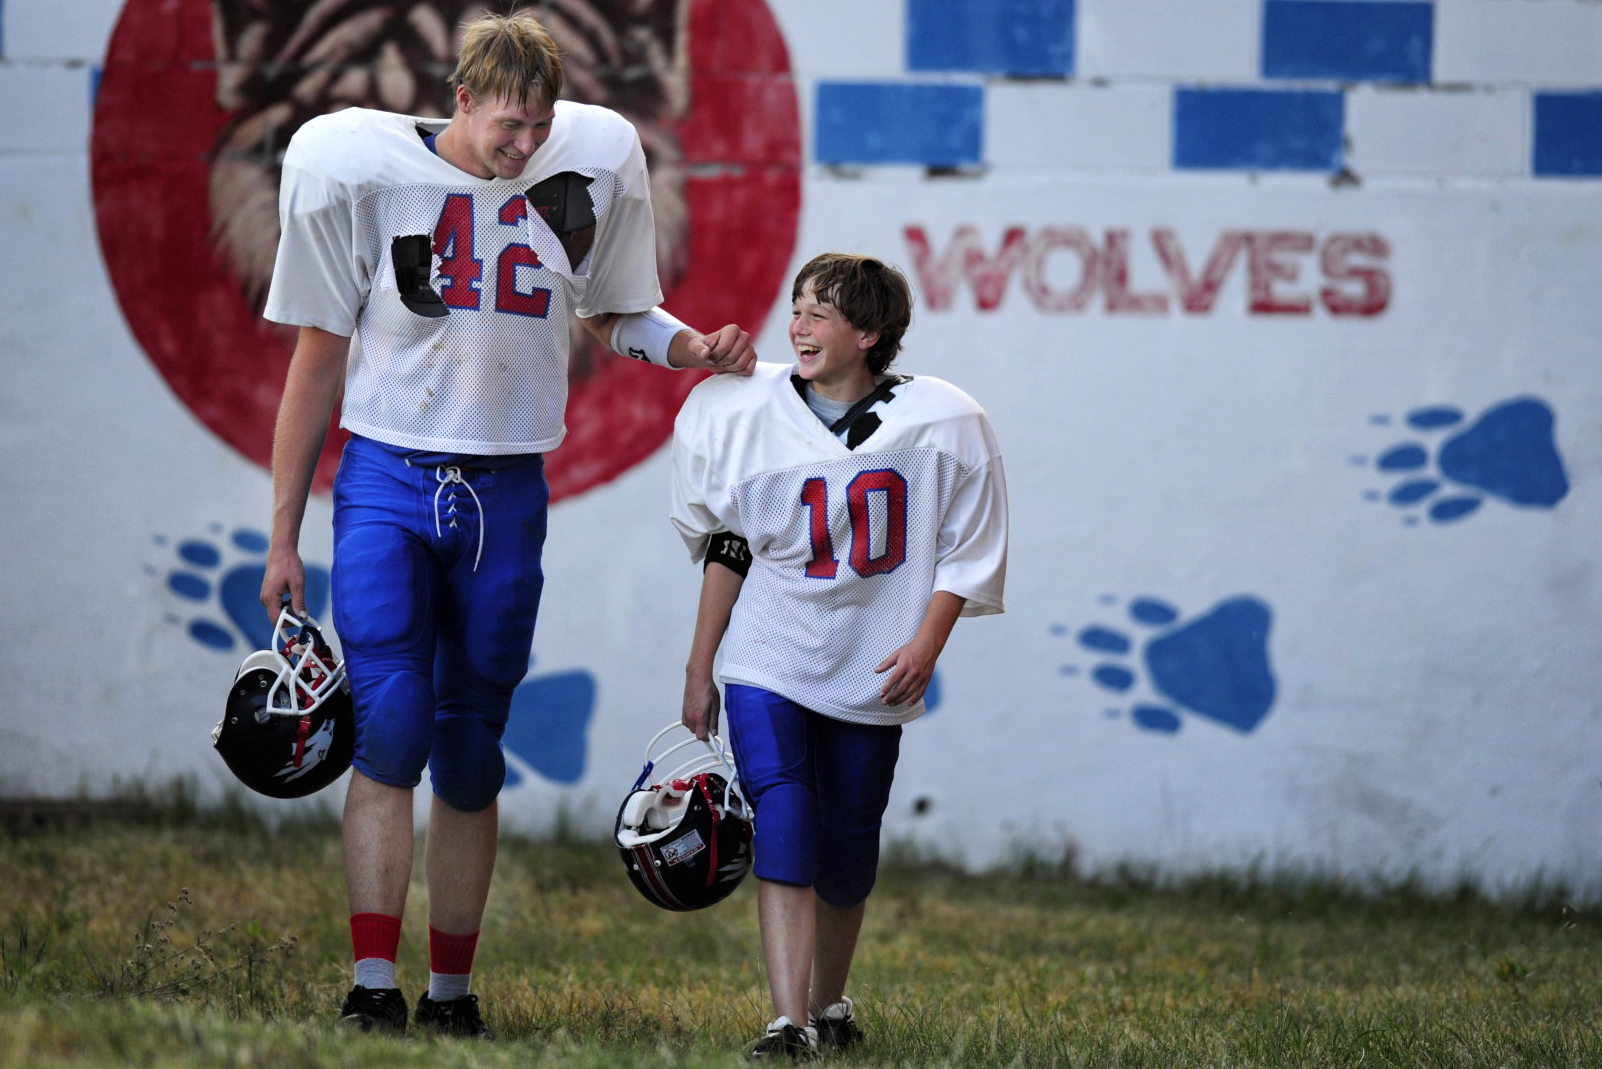 Will Lagey (10) walks onto the practice field with a tall teammate.